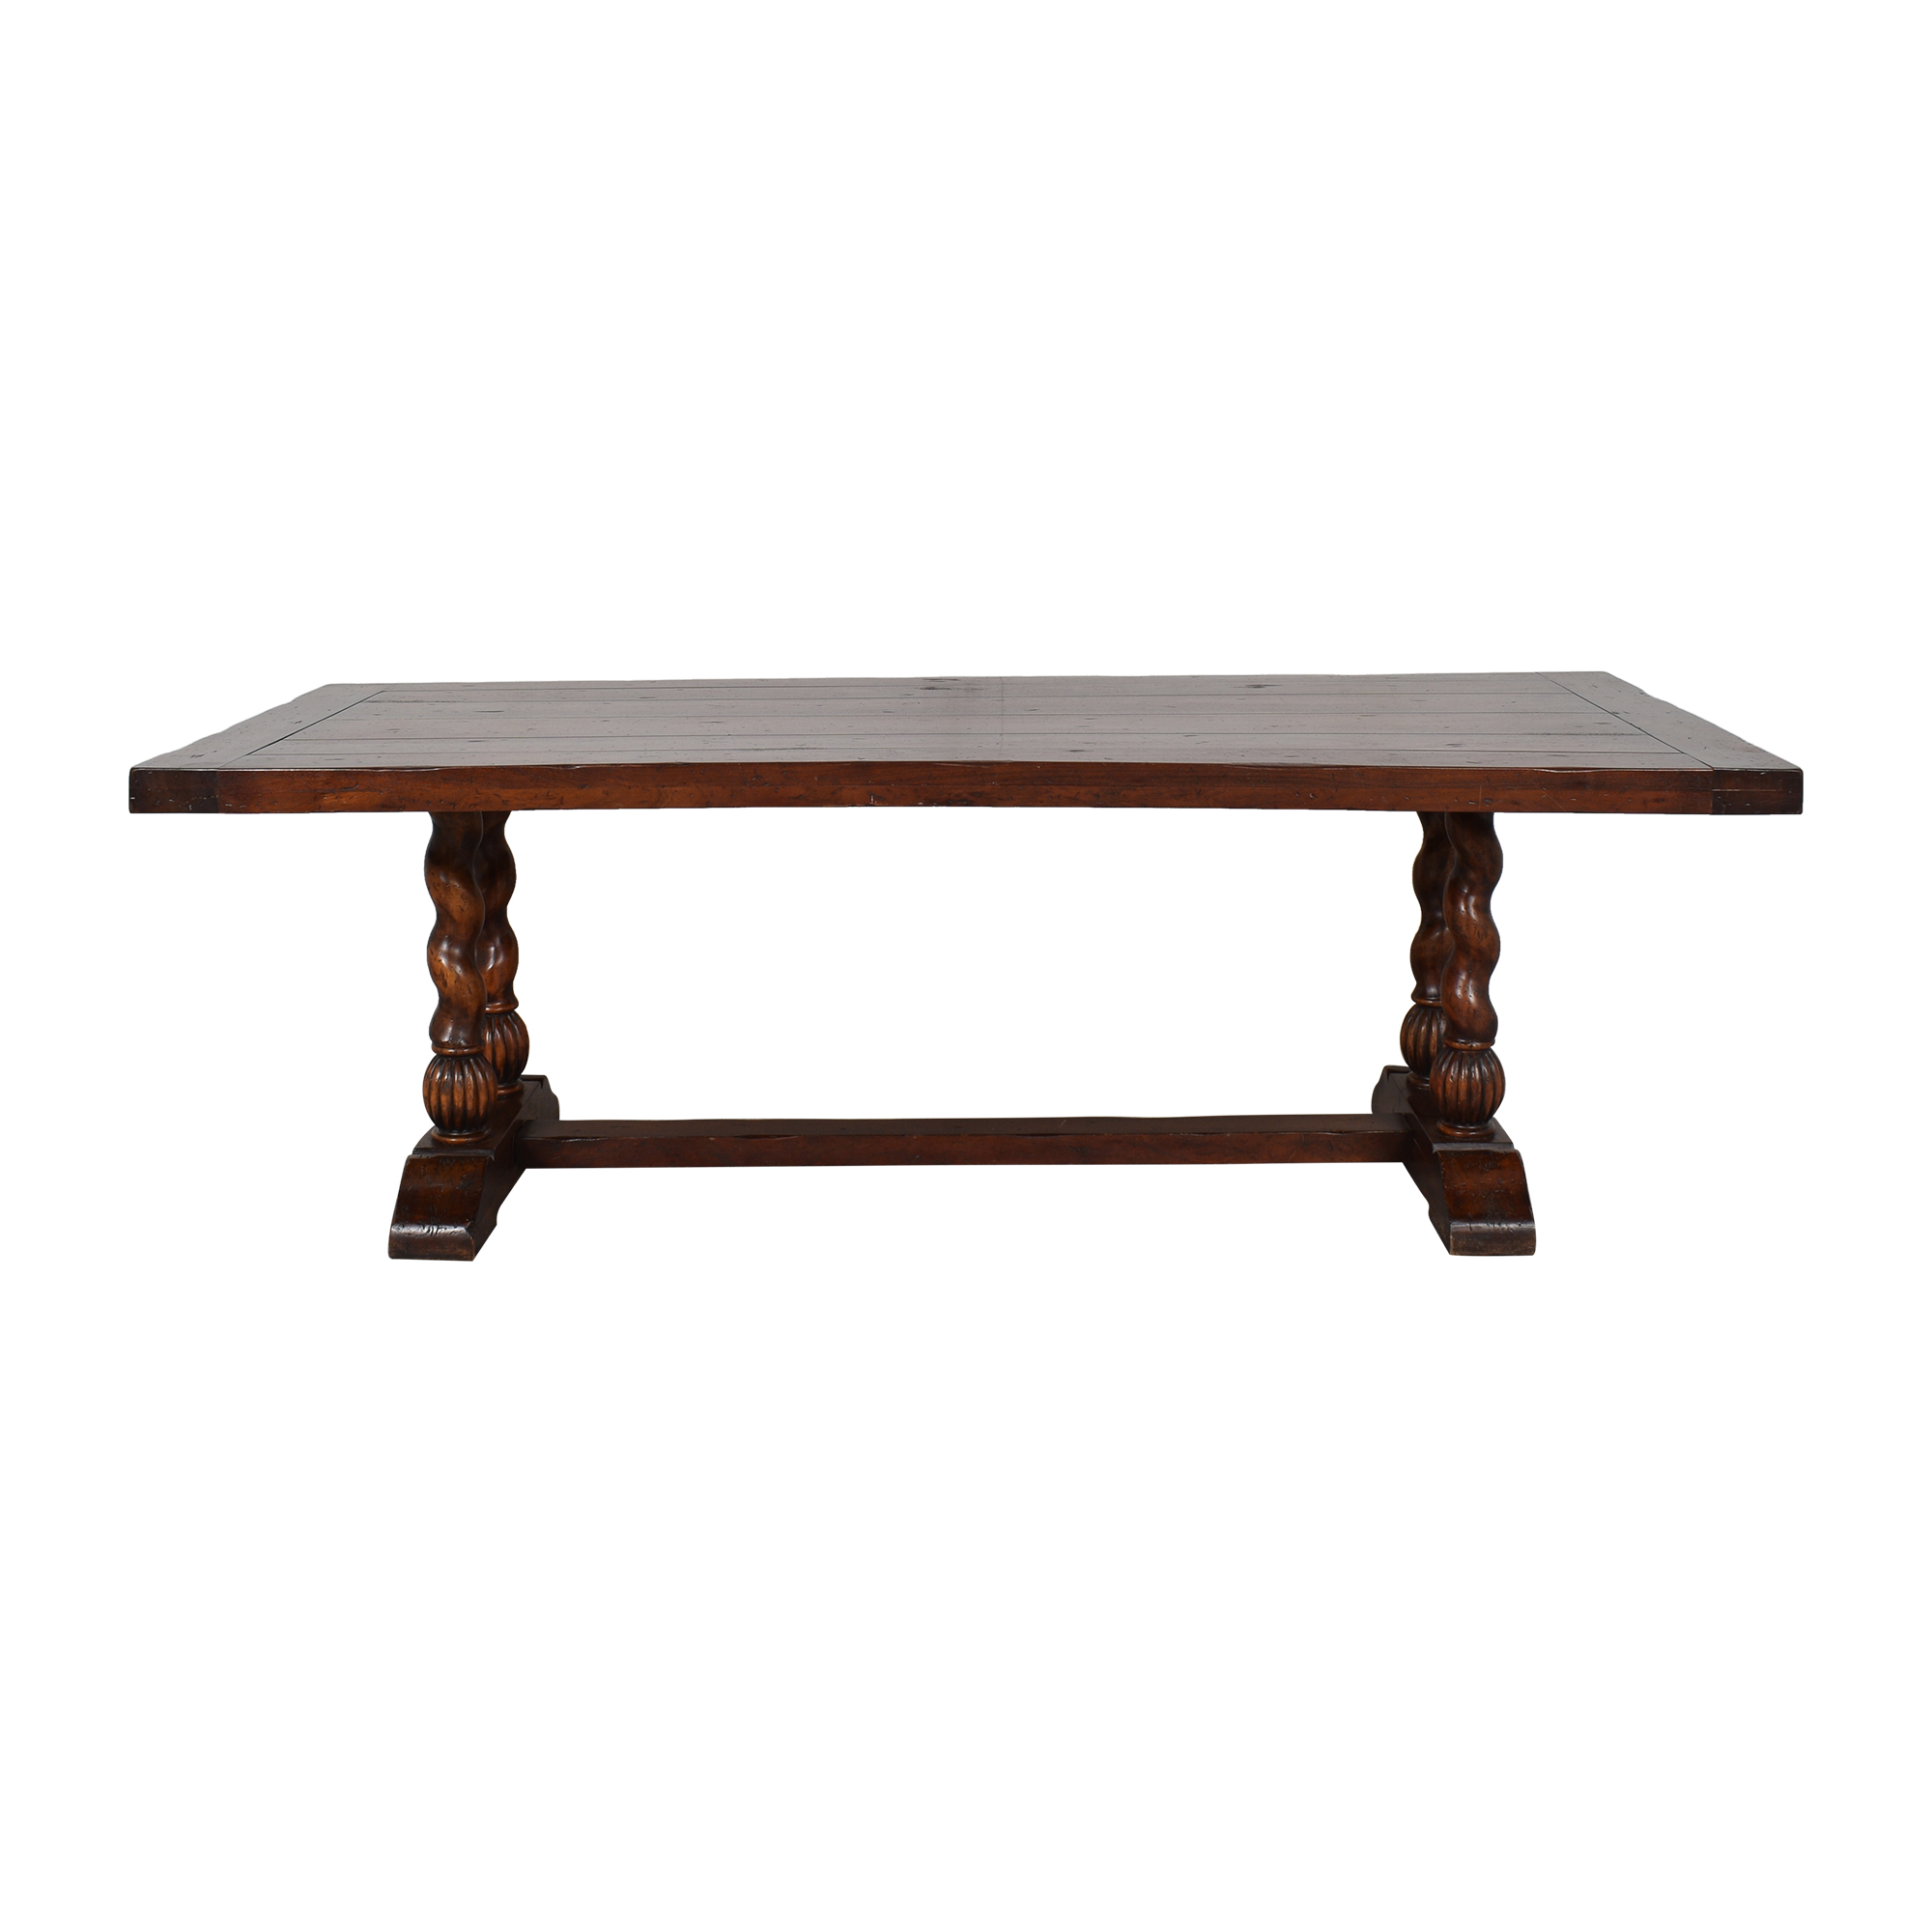 Lillian August Lillian August Farmhouse Dining Table dimensions